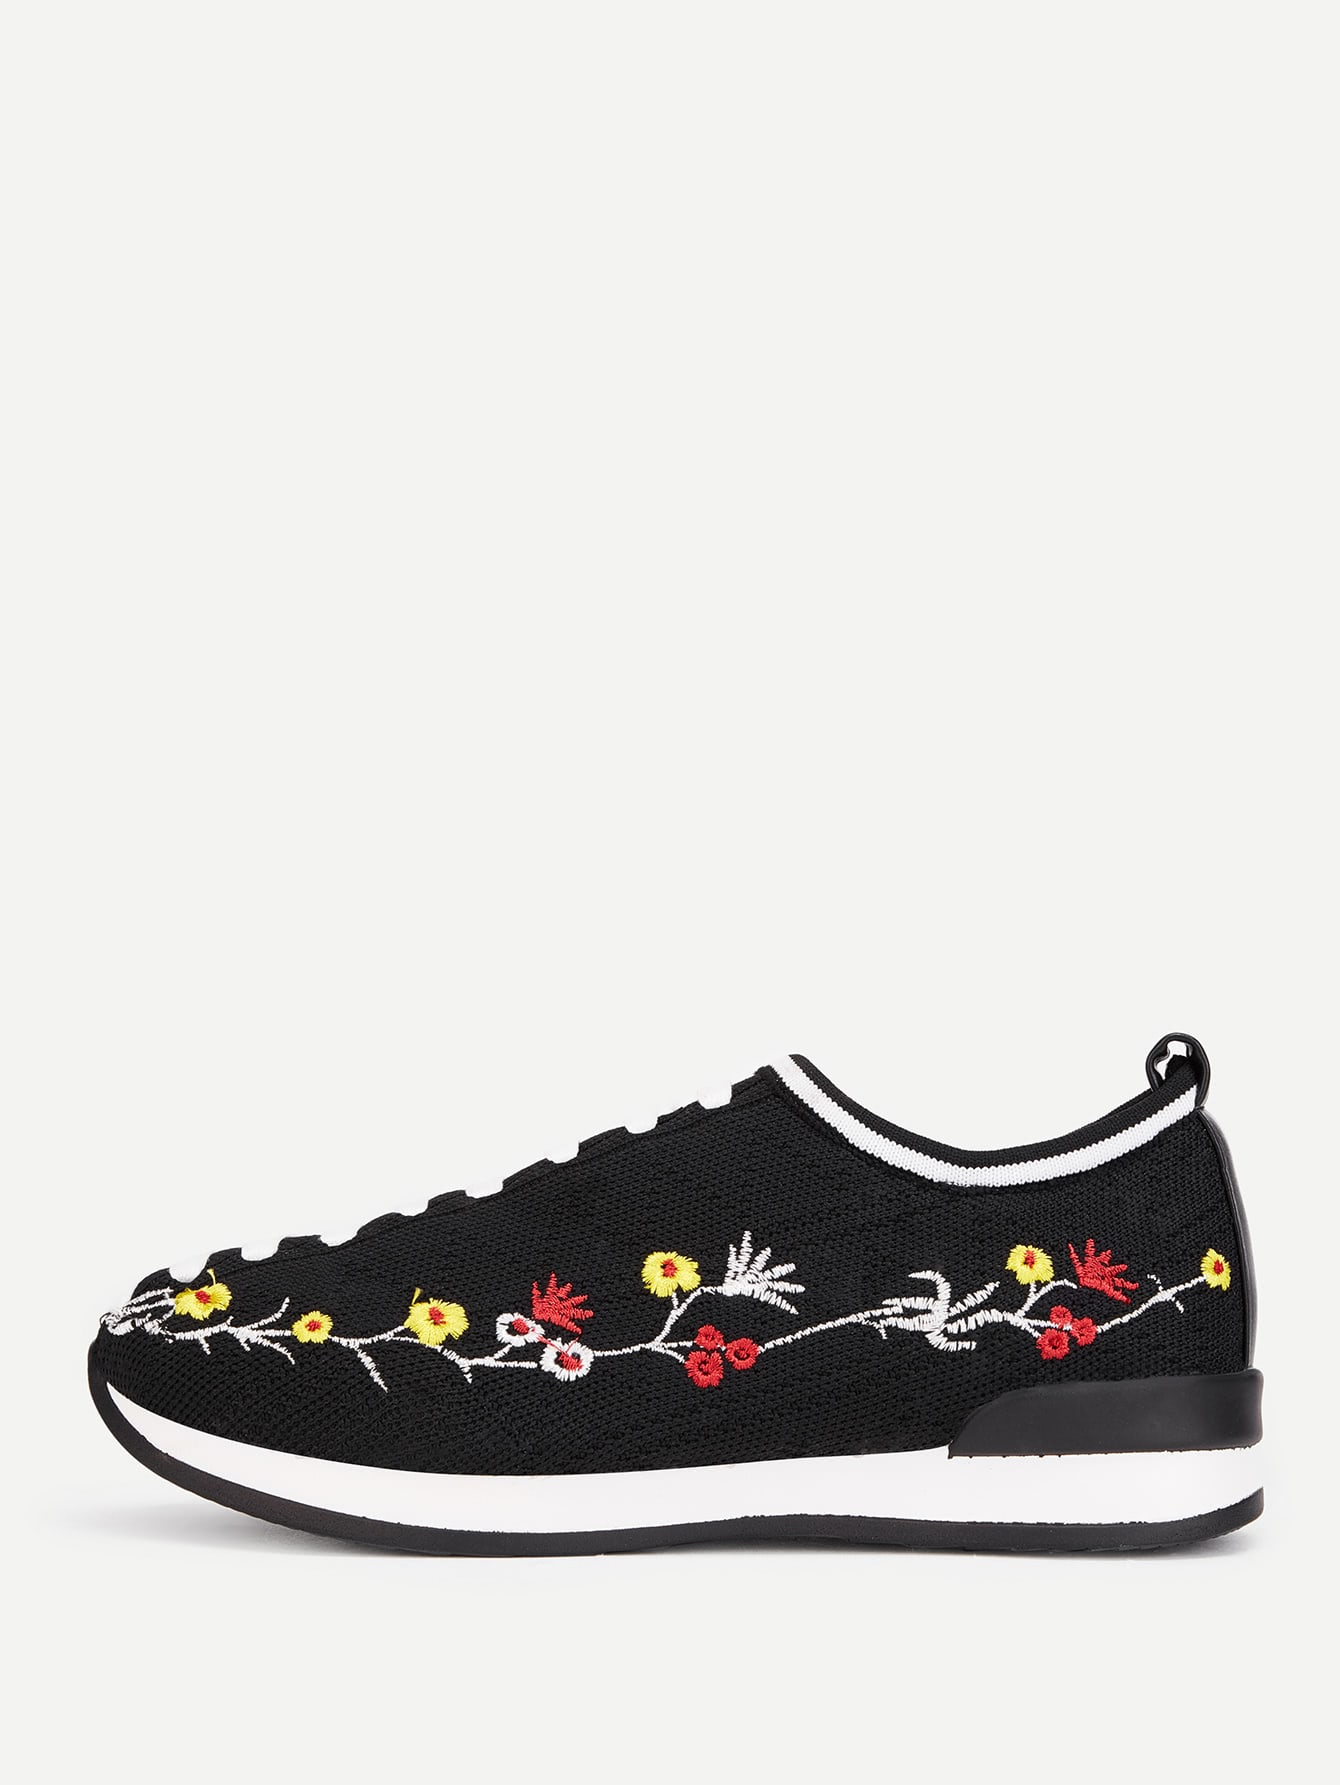 Image of Calico Embroidery Knit Sneaker